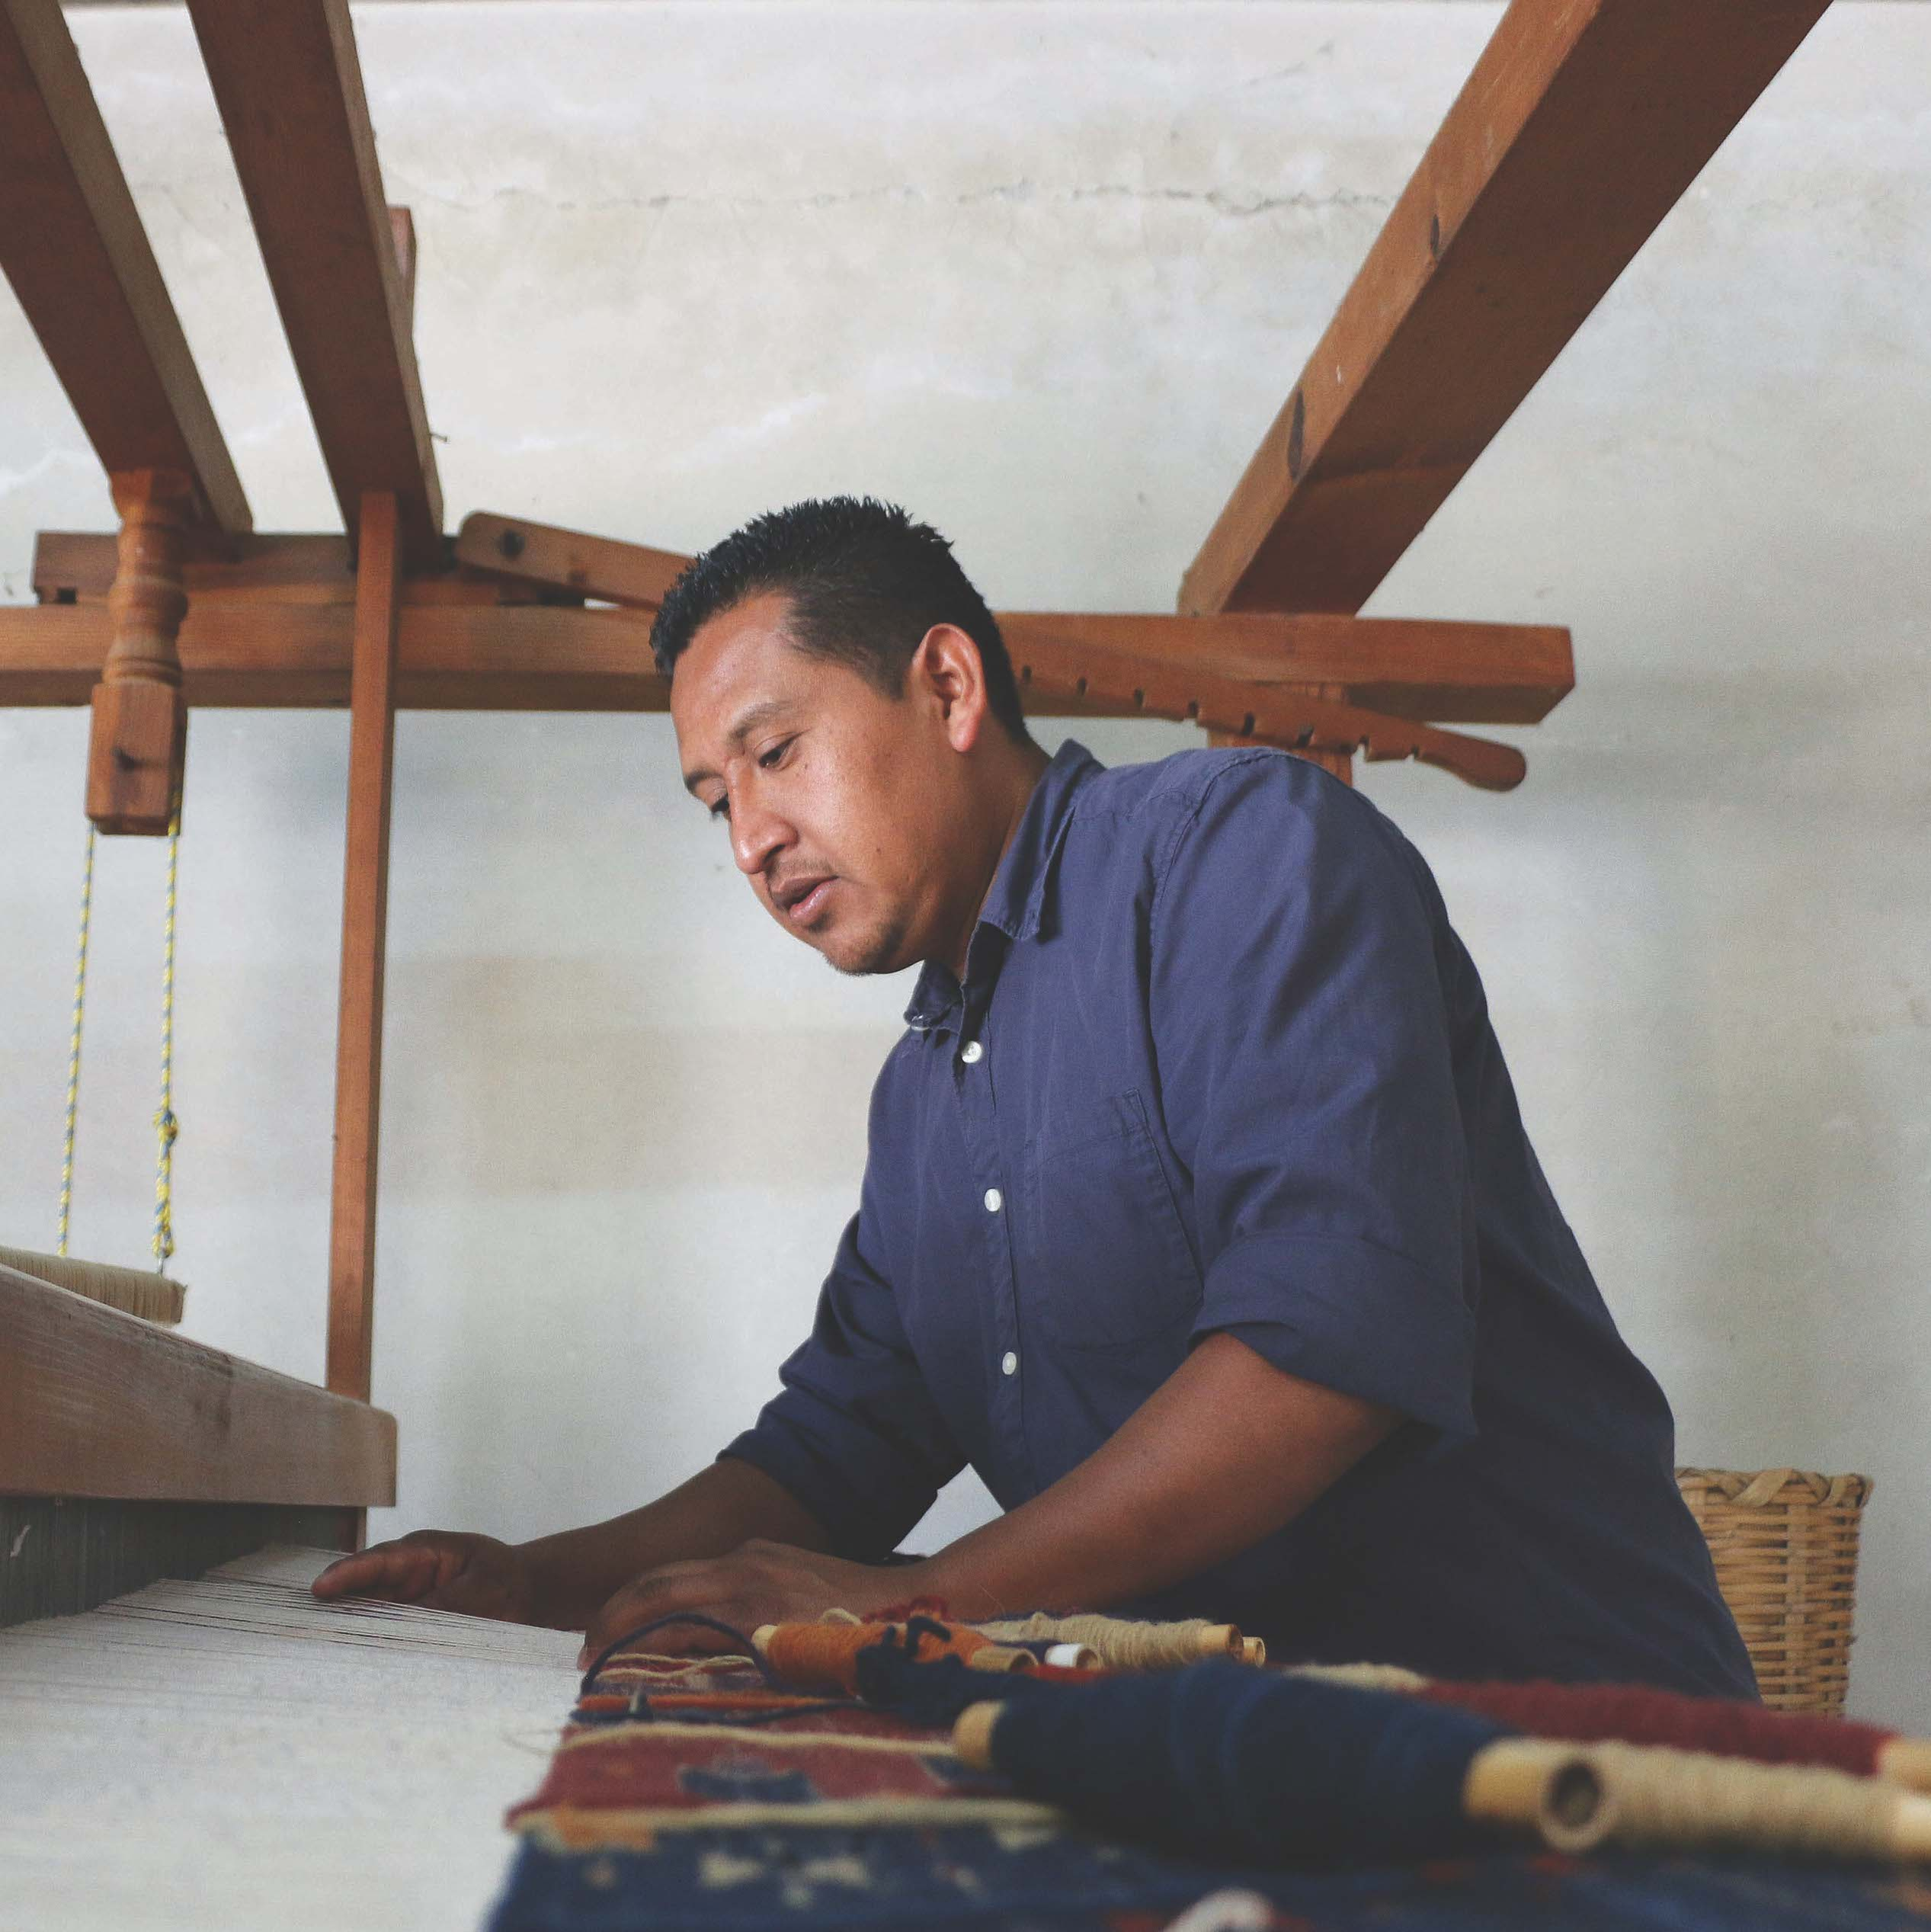 a person working on a tapestry in a weaving studio